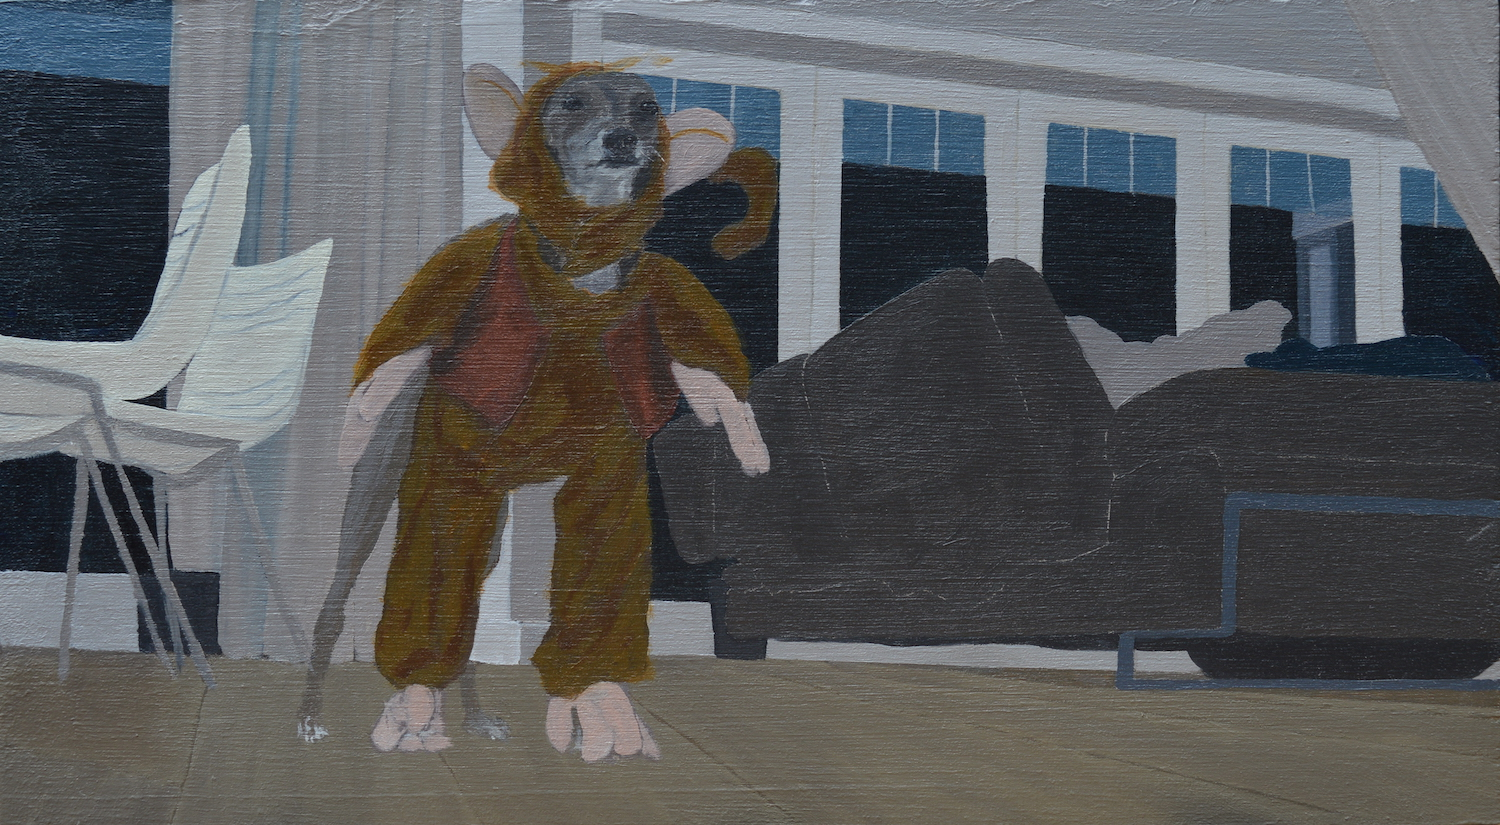 My Dogs Try On Halloween Costumes 3 #2. Maddy Buttling. Jackson's Painting Prize.